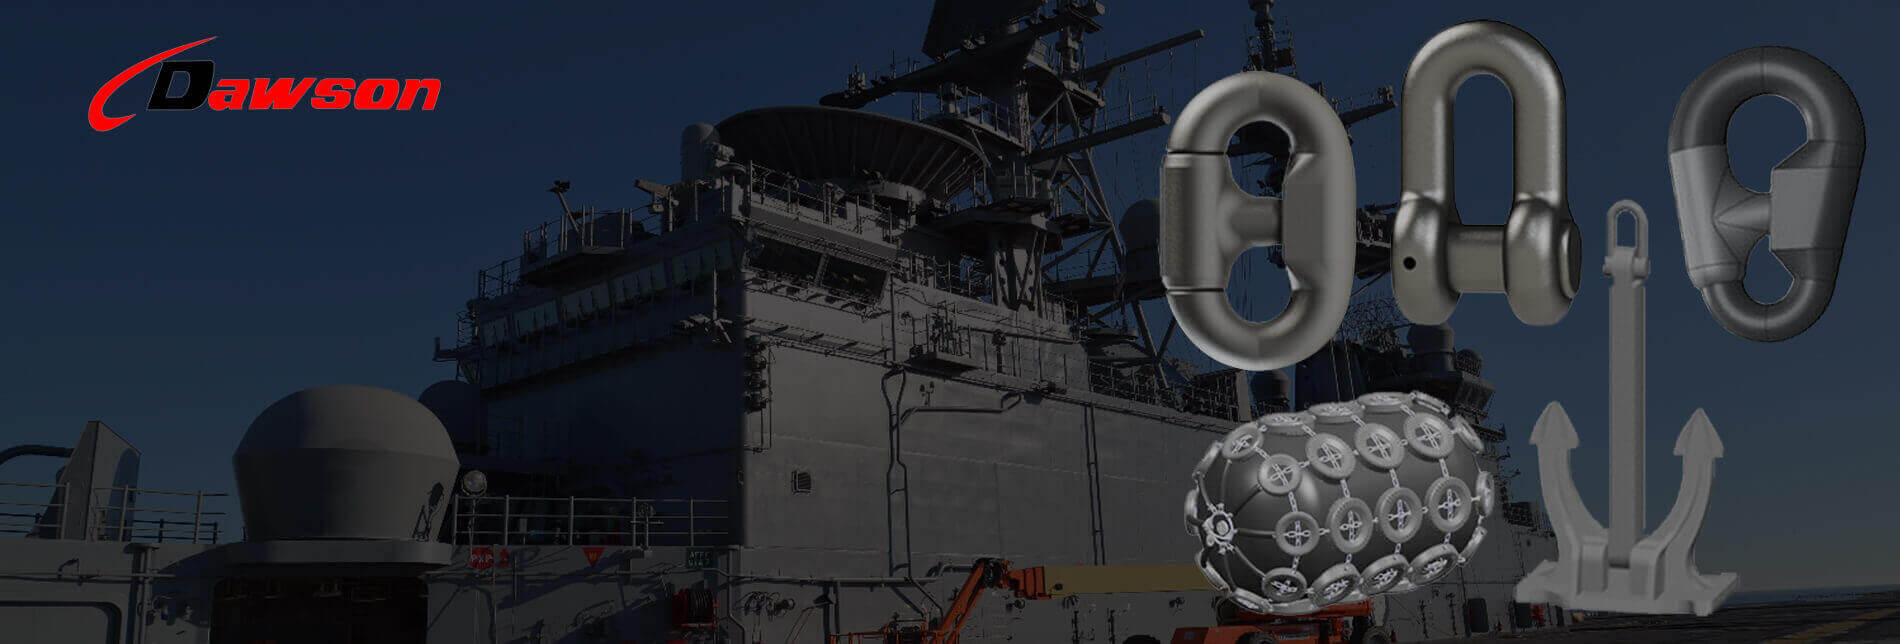 Marine Hardware - DAWSON LIFTING AND RIGGING SUPPLIER